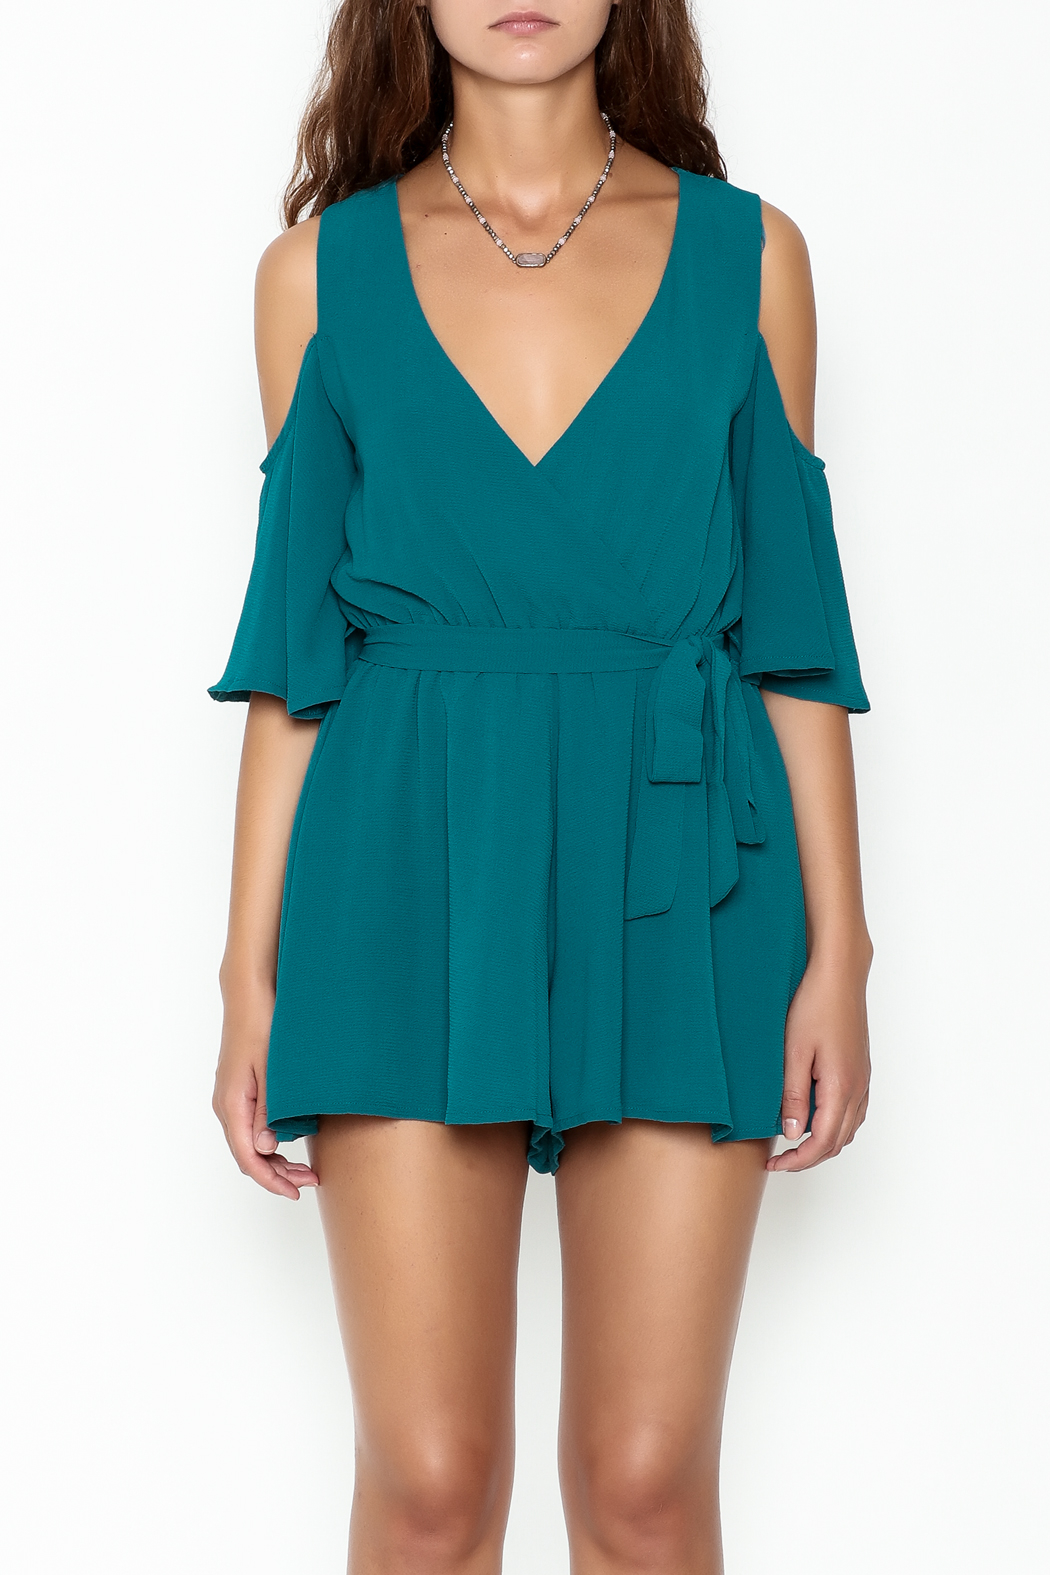 luxxel Open Shoulder Romper - Front Full Image